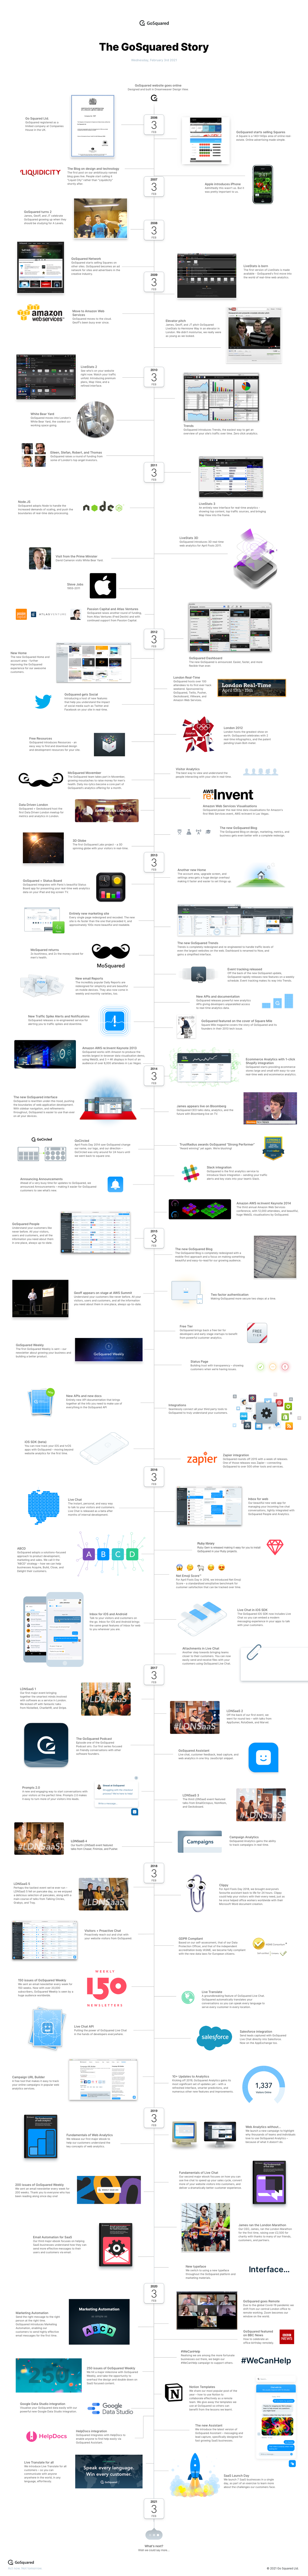 Timeline of 15 years of GoSquared history.